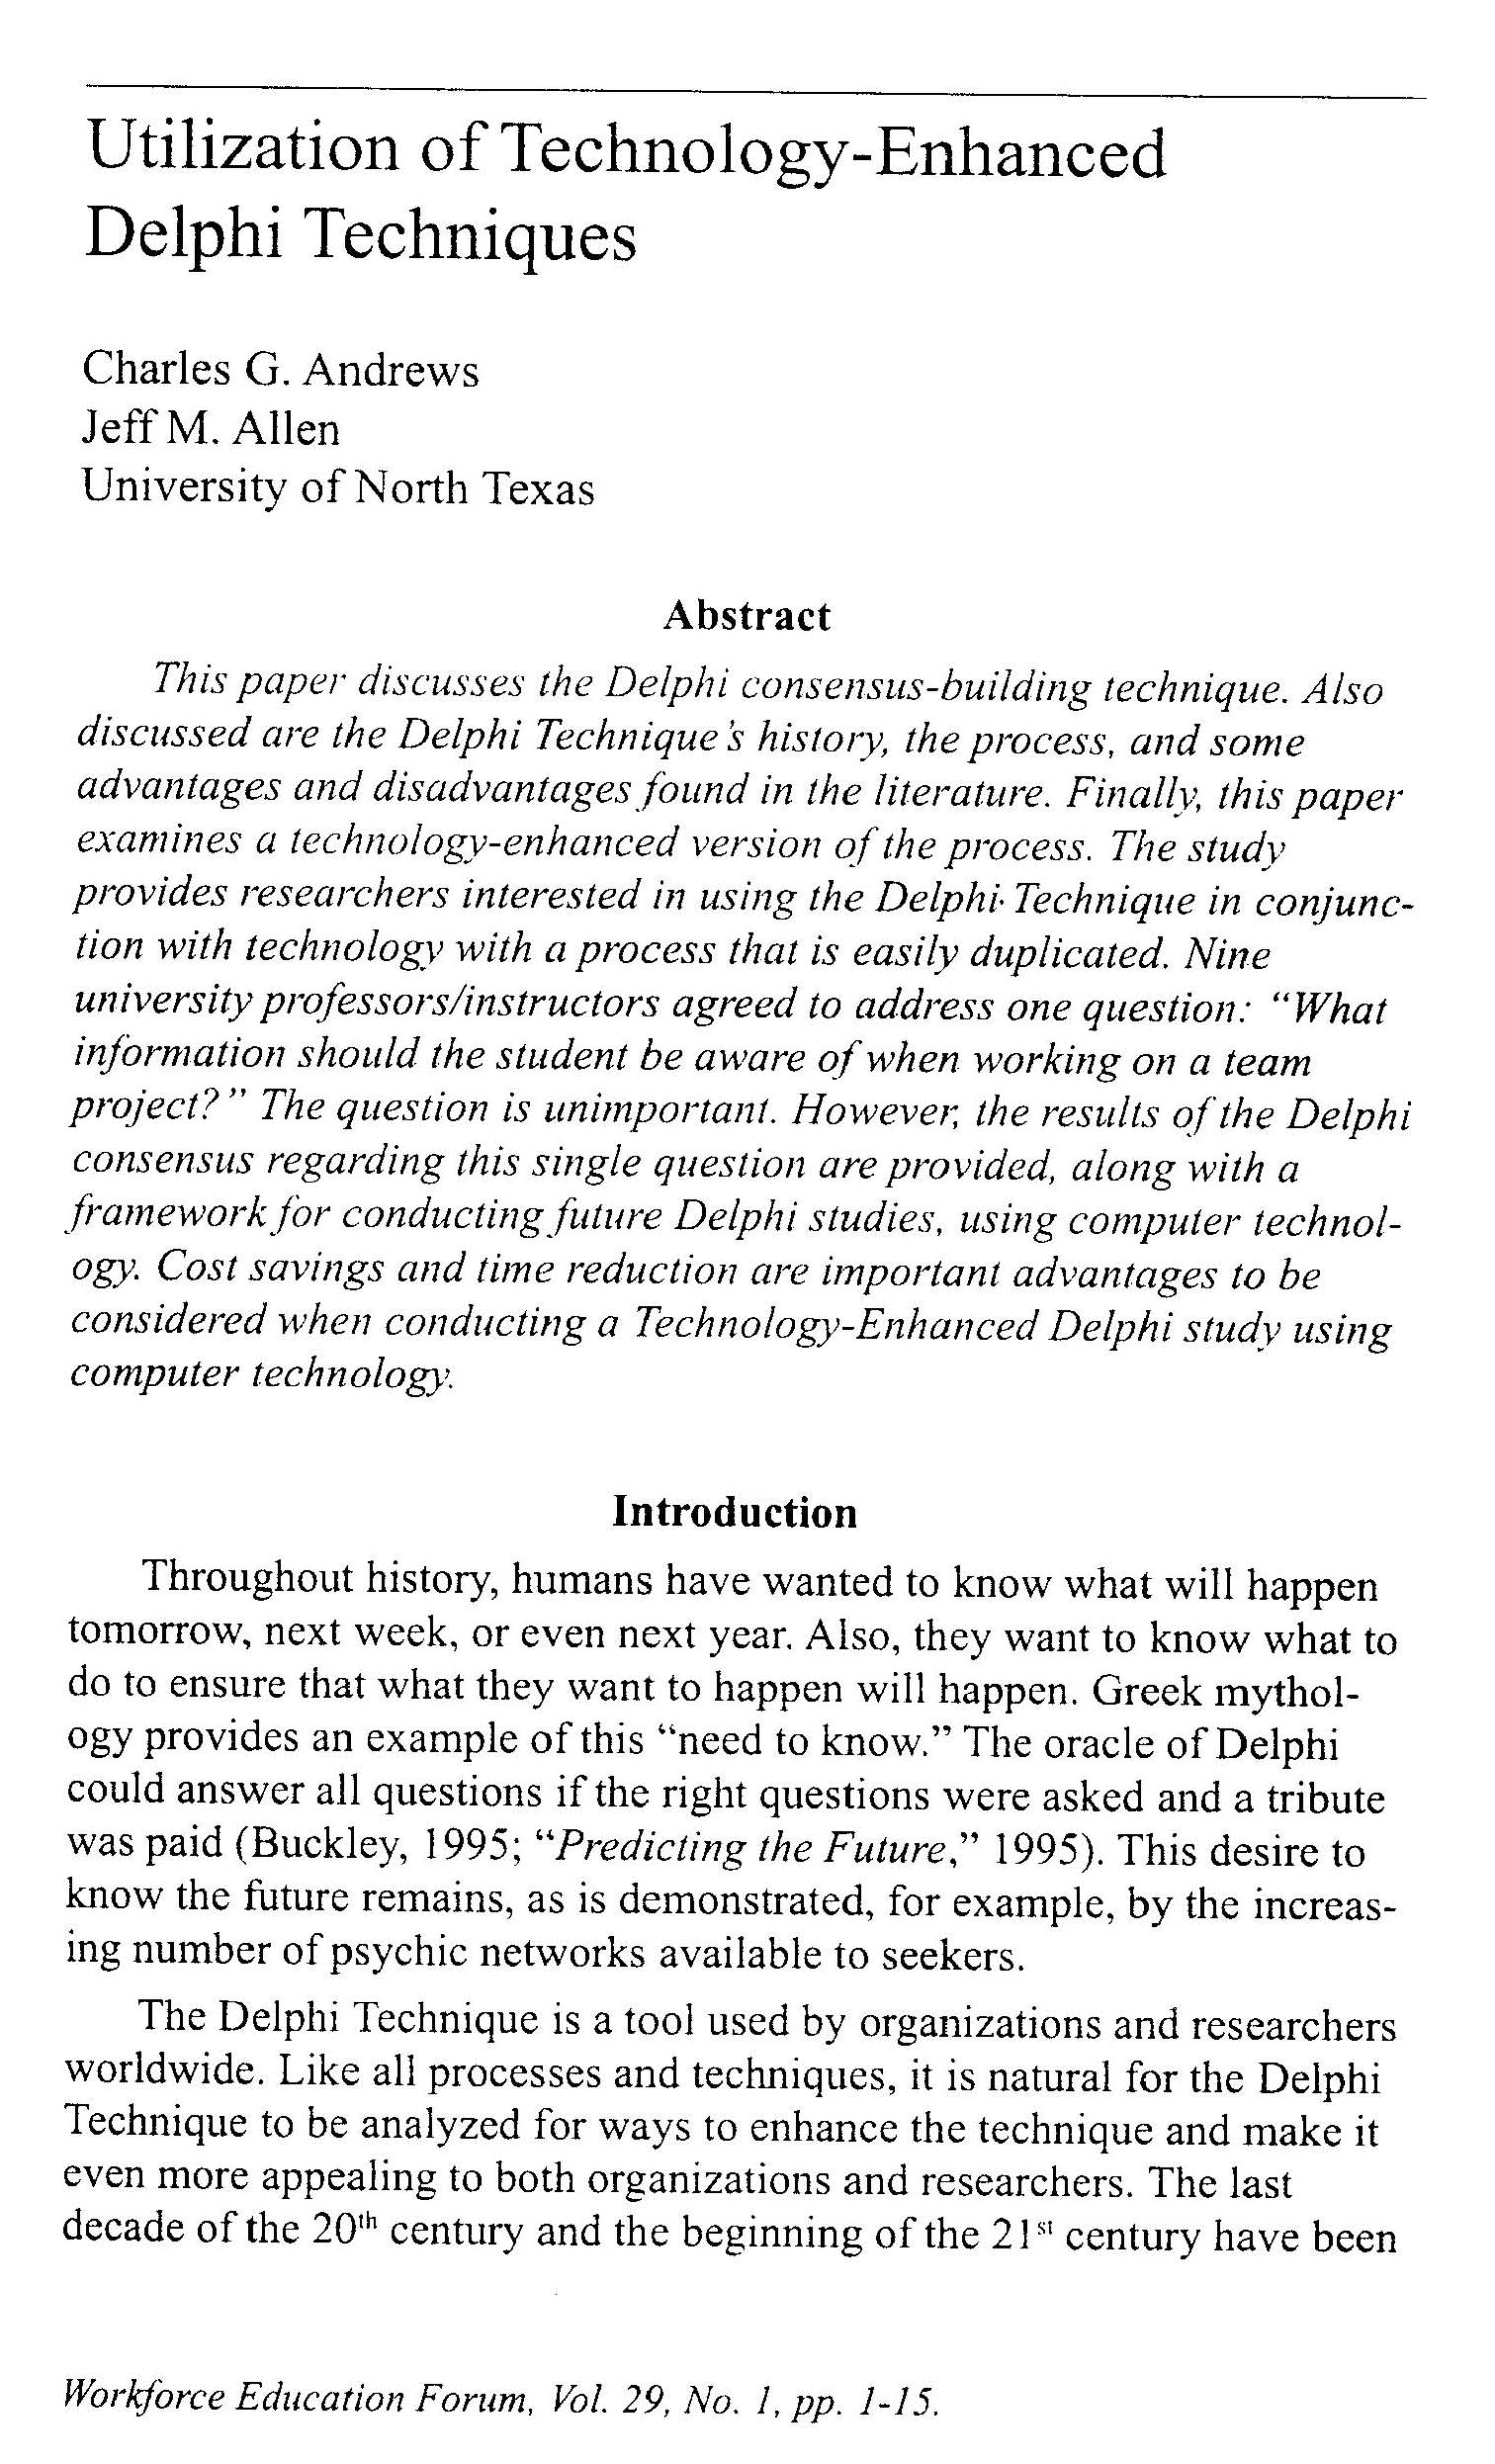 advantages of the delphi technique Read 5 answers by scientists with 5 recommendations from their colleagues to  the question asked by sajjad nazidizaji on feb 4, 2015.